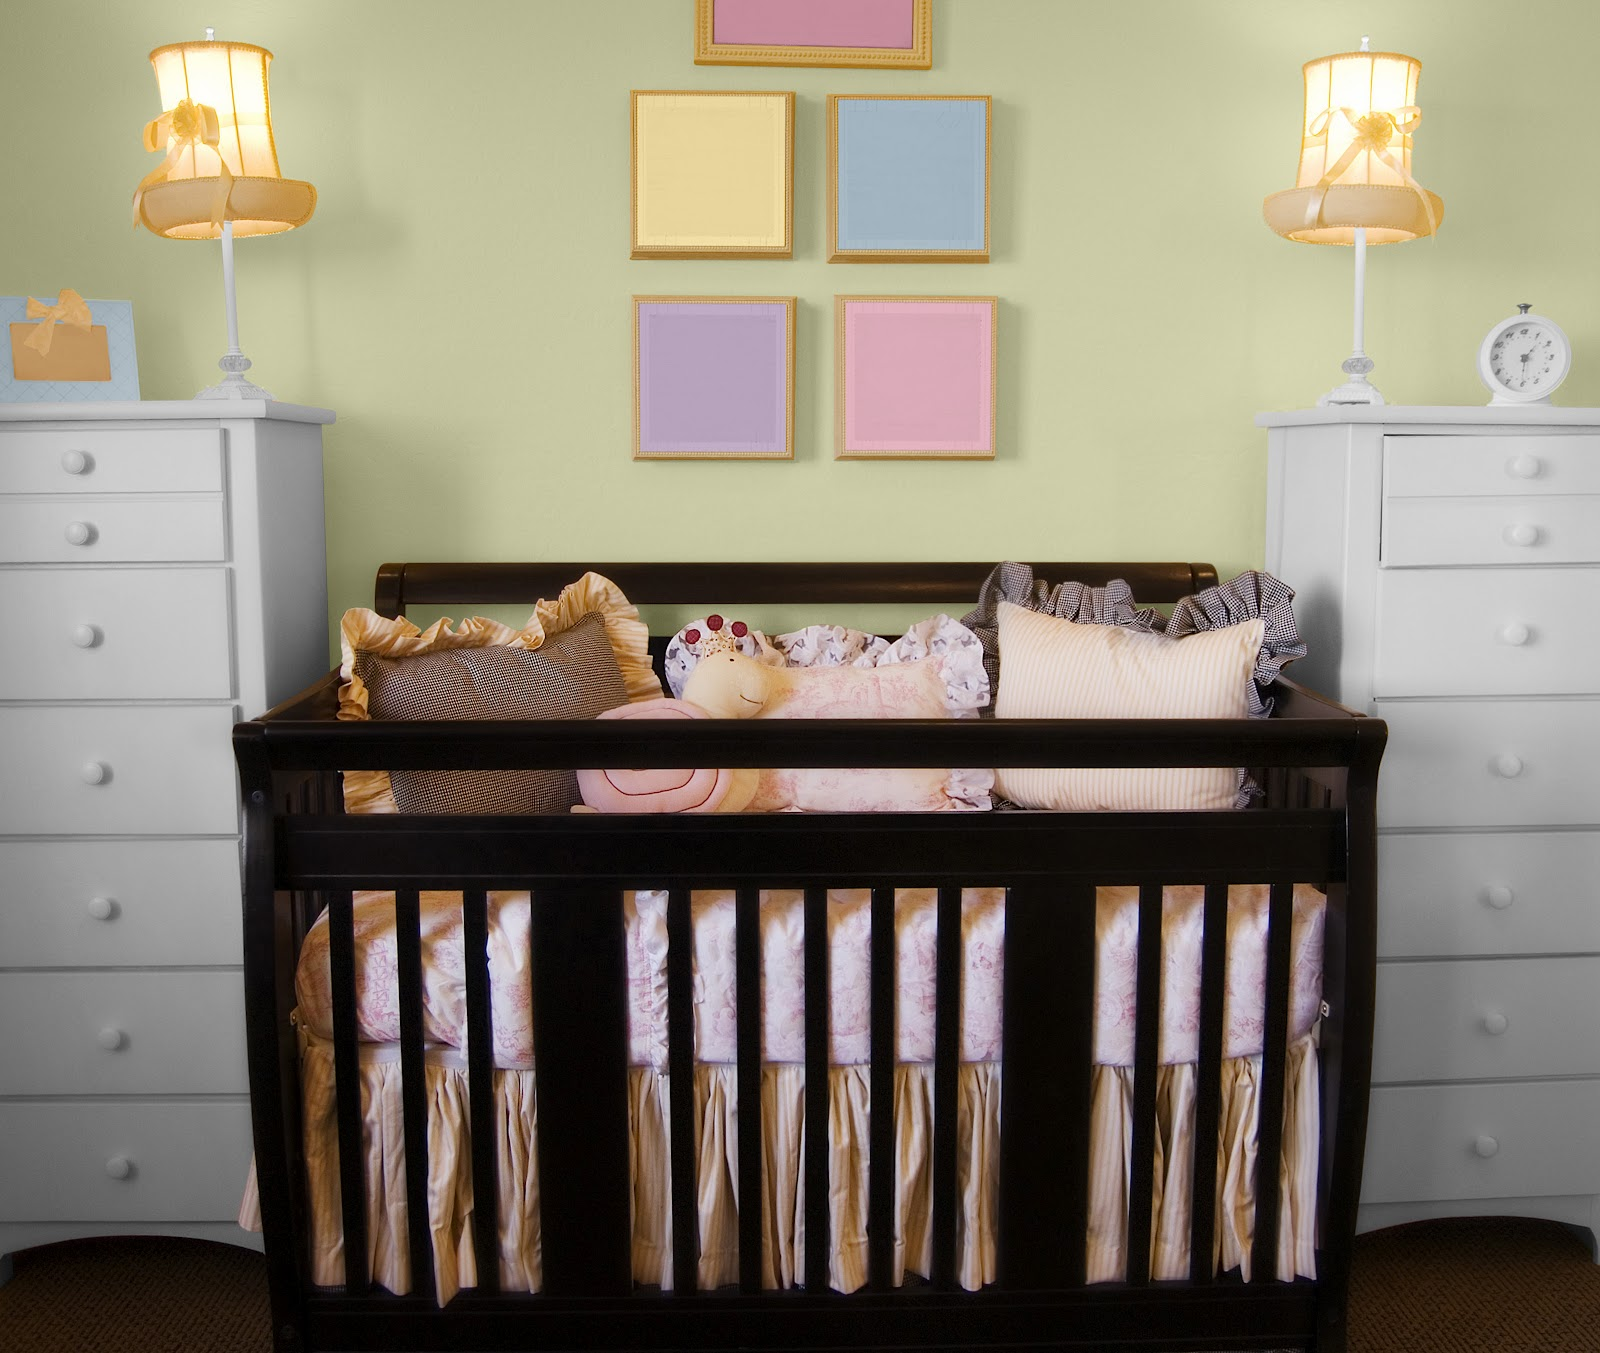 Top 10 baby nursery room colors and decorating ideas for Baby room decoration